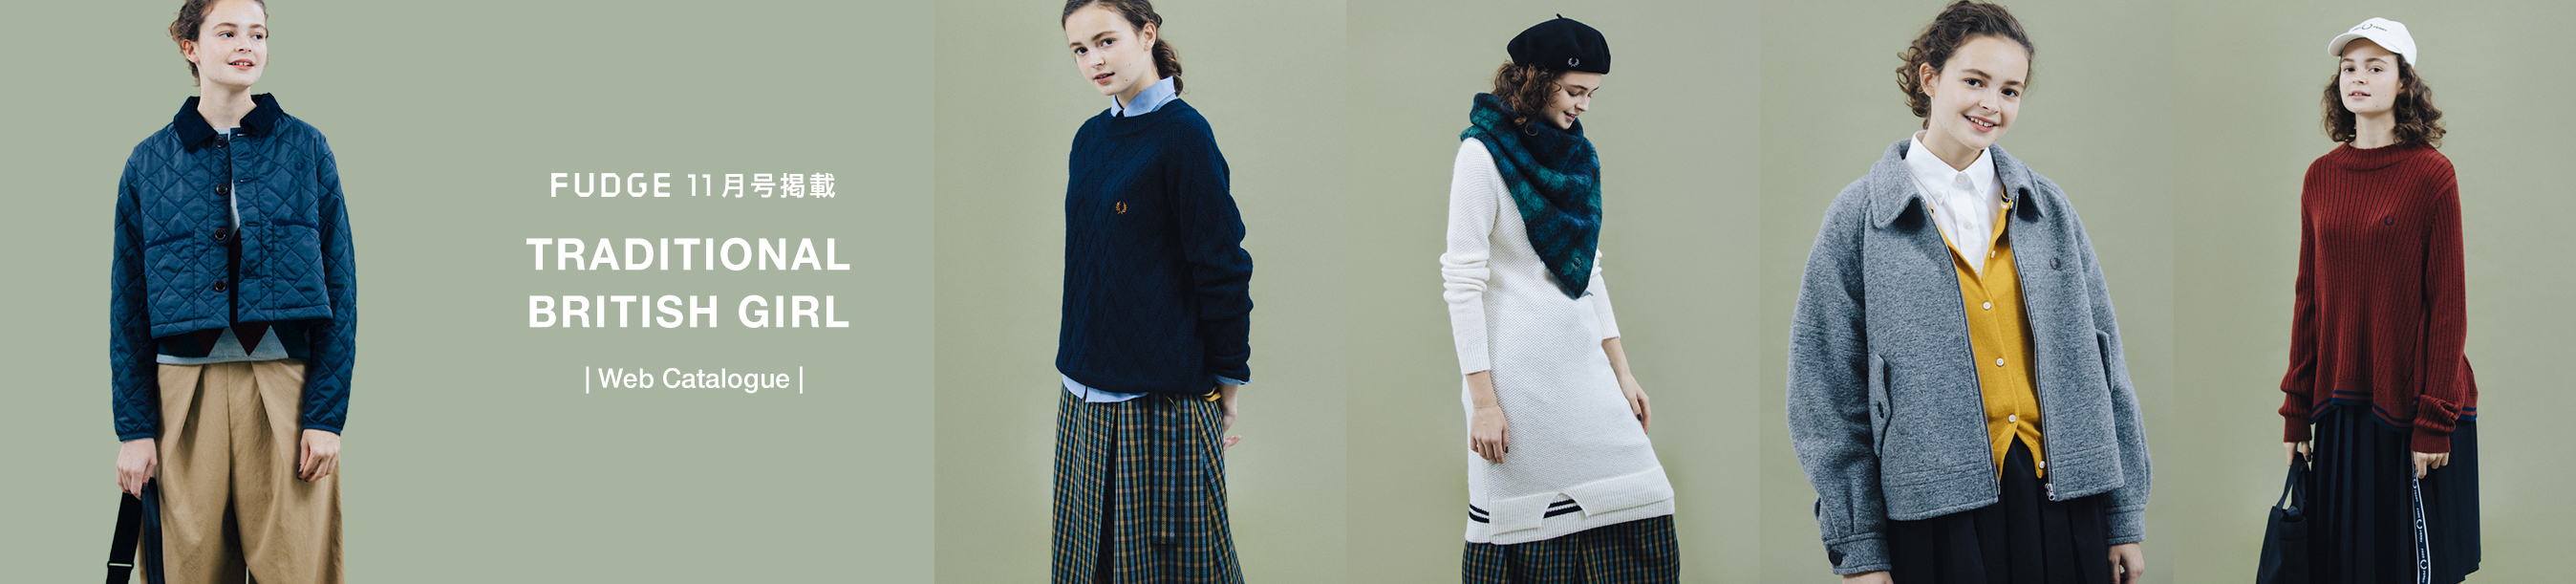 FUDGE x FRED PERRY 2019年11月